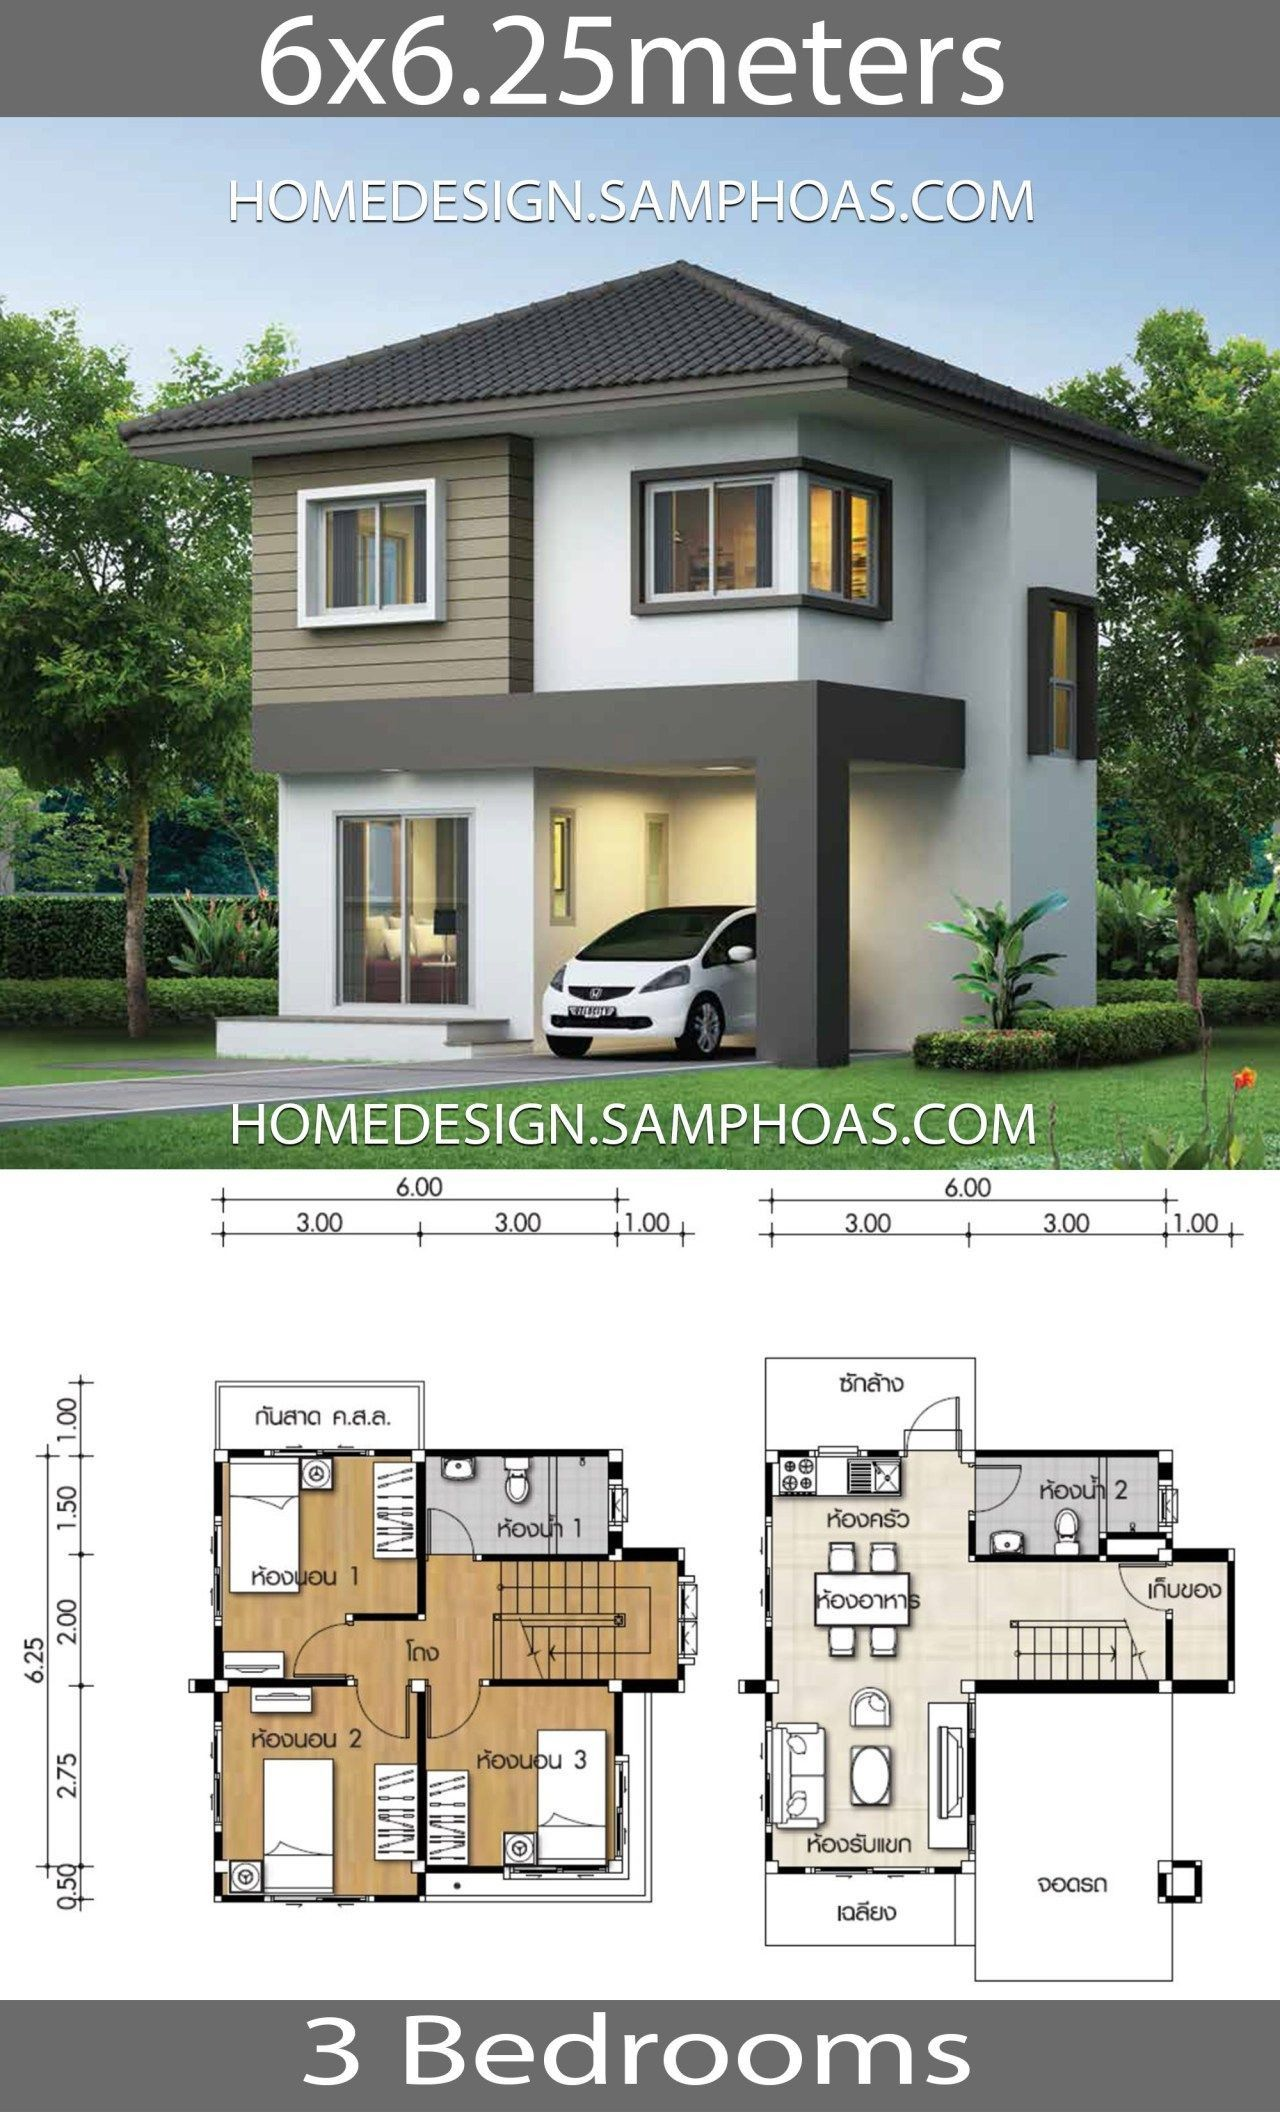 Small House Plan 6x6 25m With 3 Bedrooms Small House Exteriors Small House Layout Small House Design Exterior